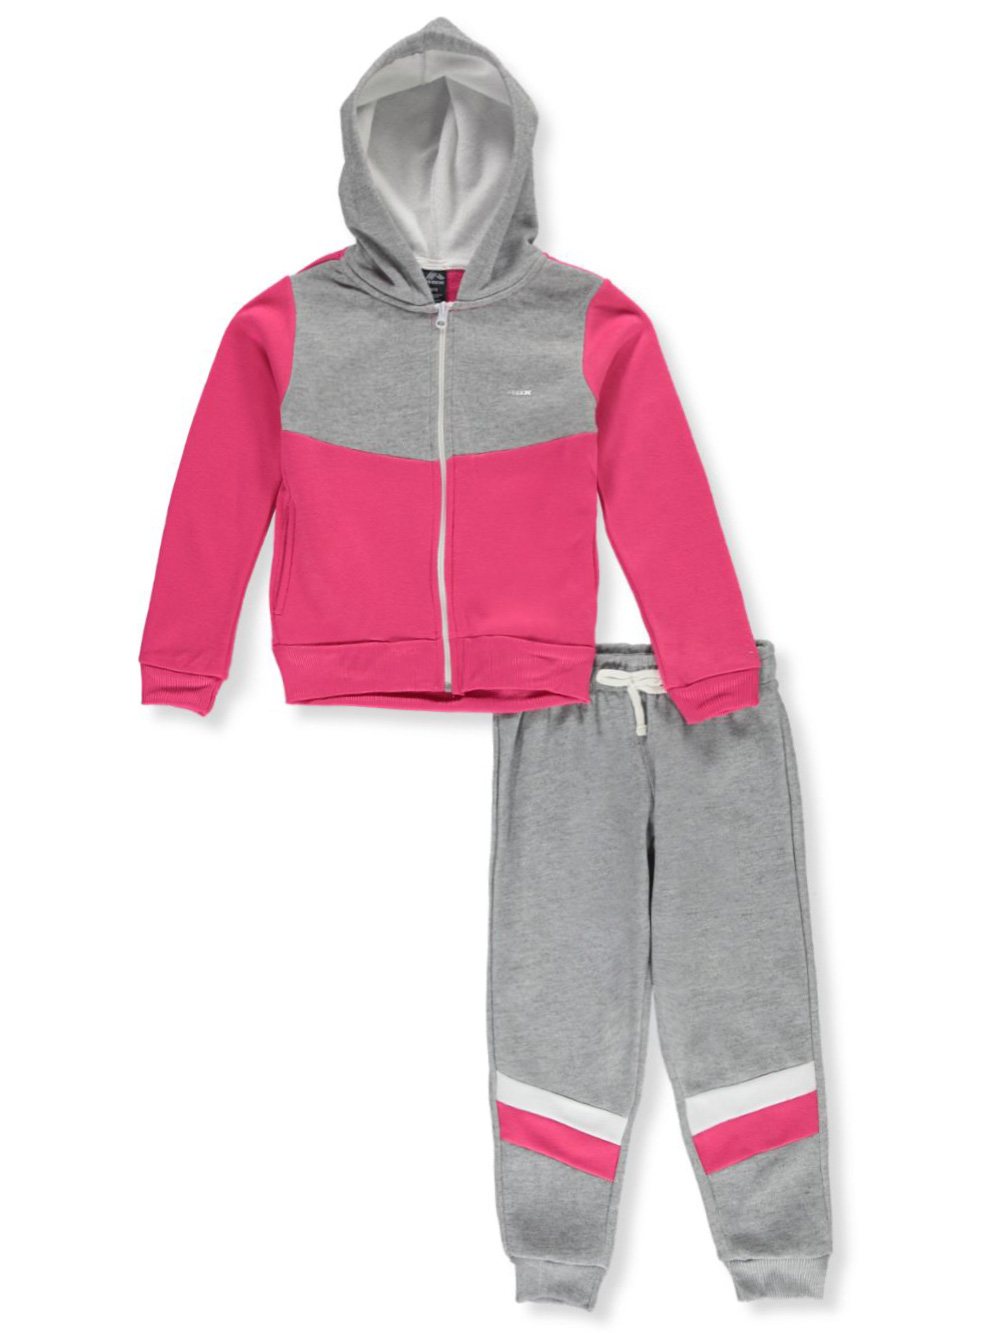 Shorts 2-Piece Sweatsuit Outfit